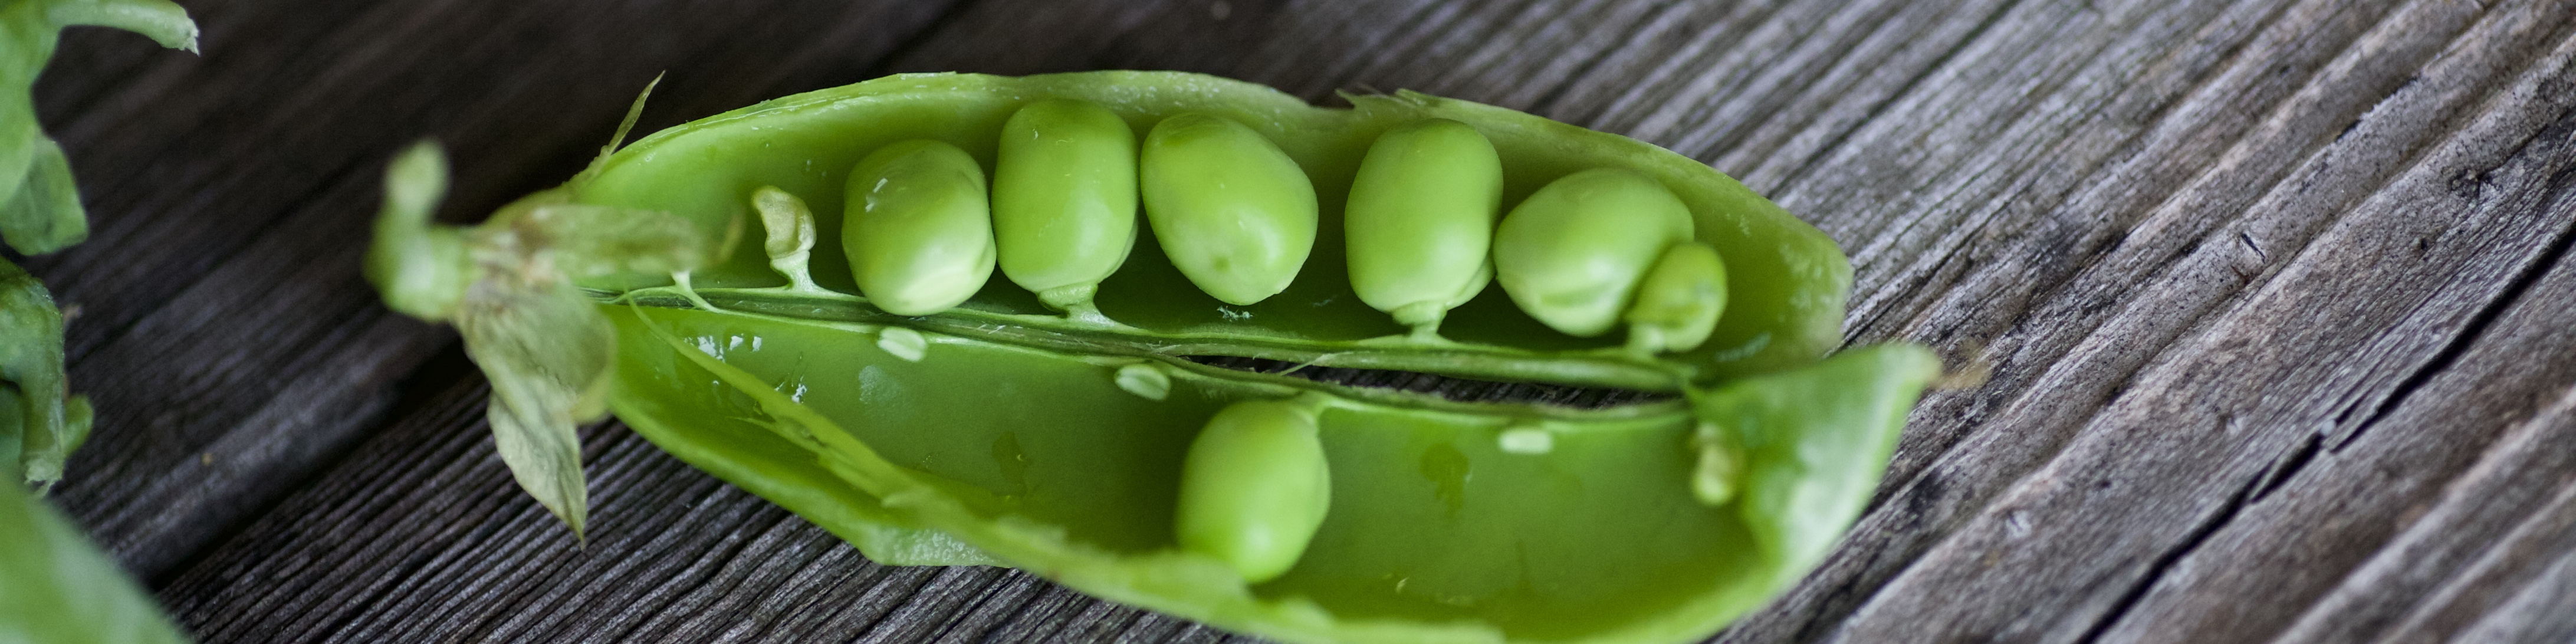 Beans and Peas